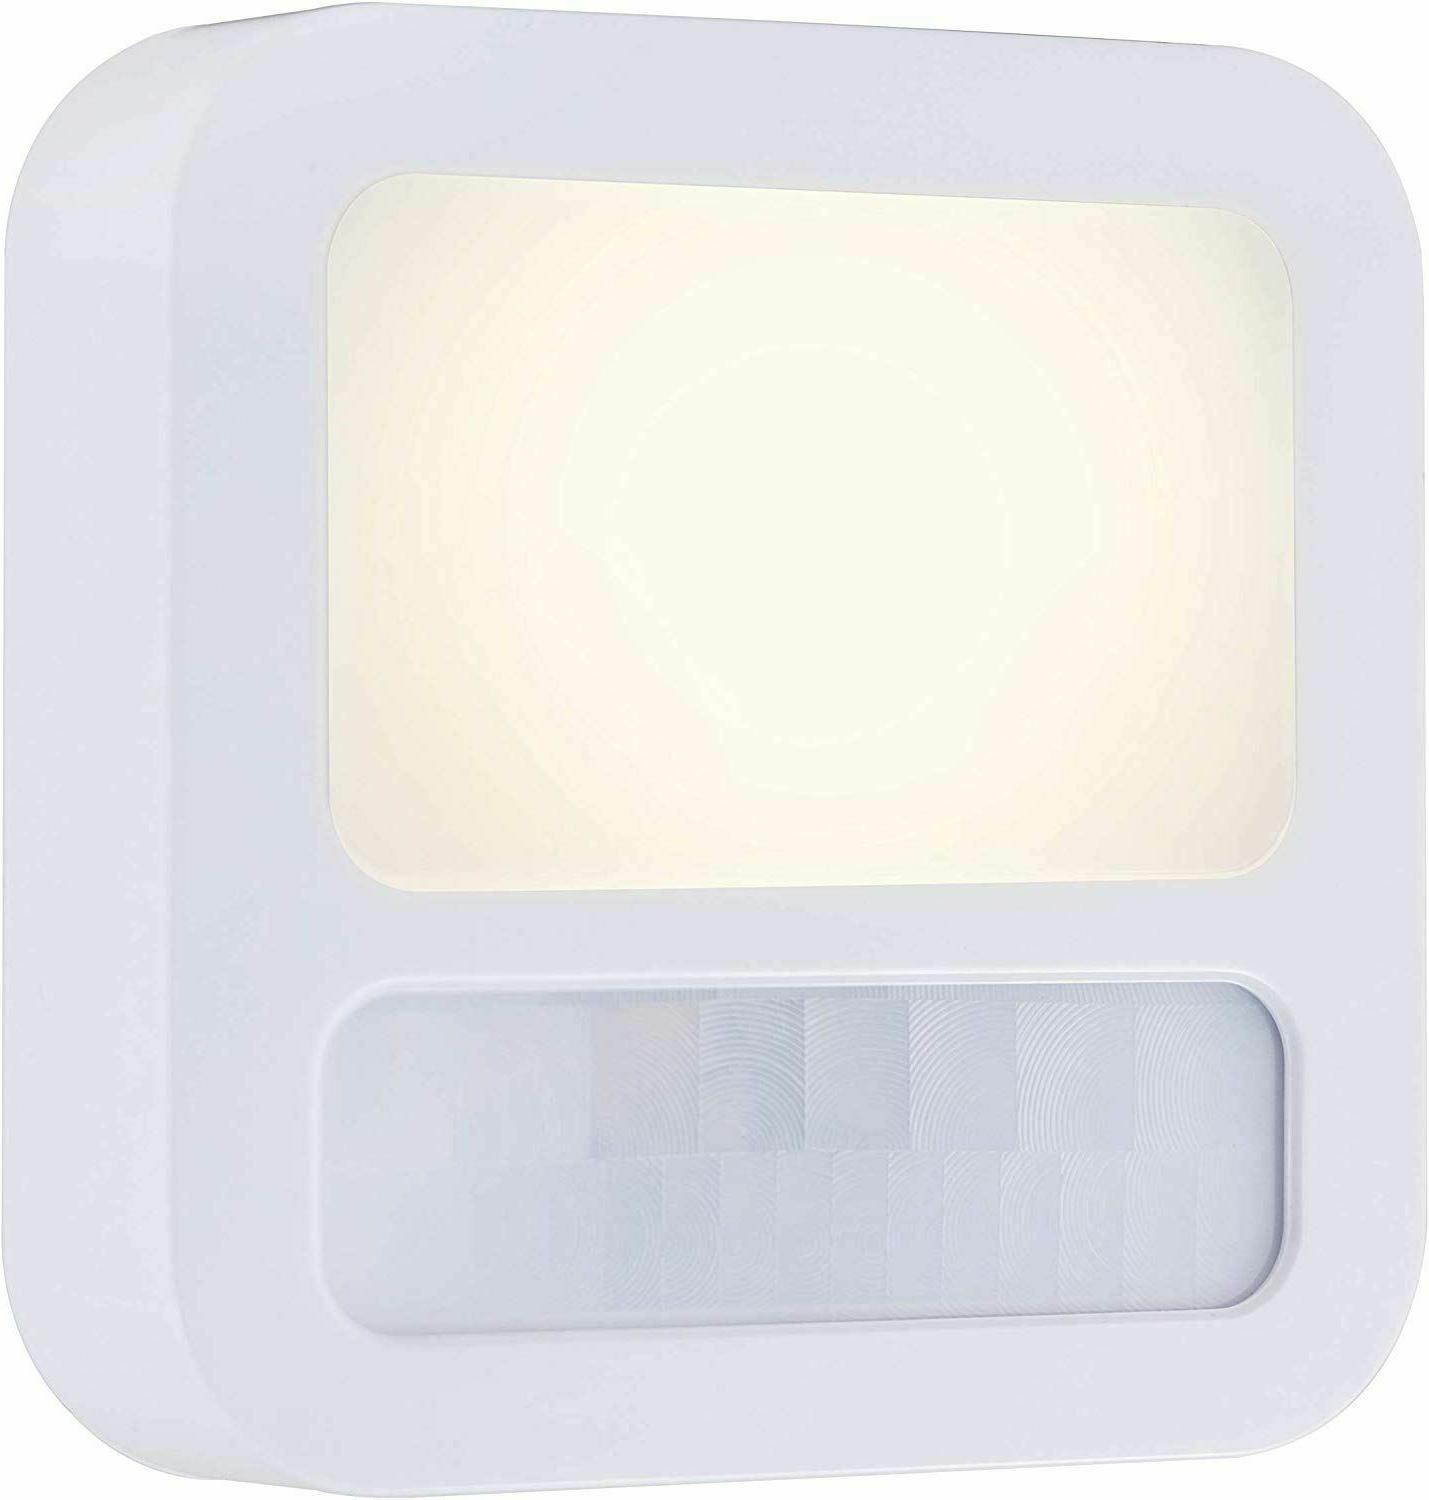 Plug In Motion Activated Detector Sensor LED Indoor Night Li